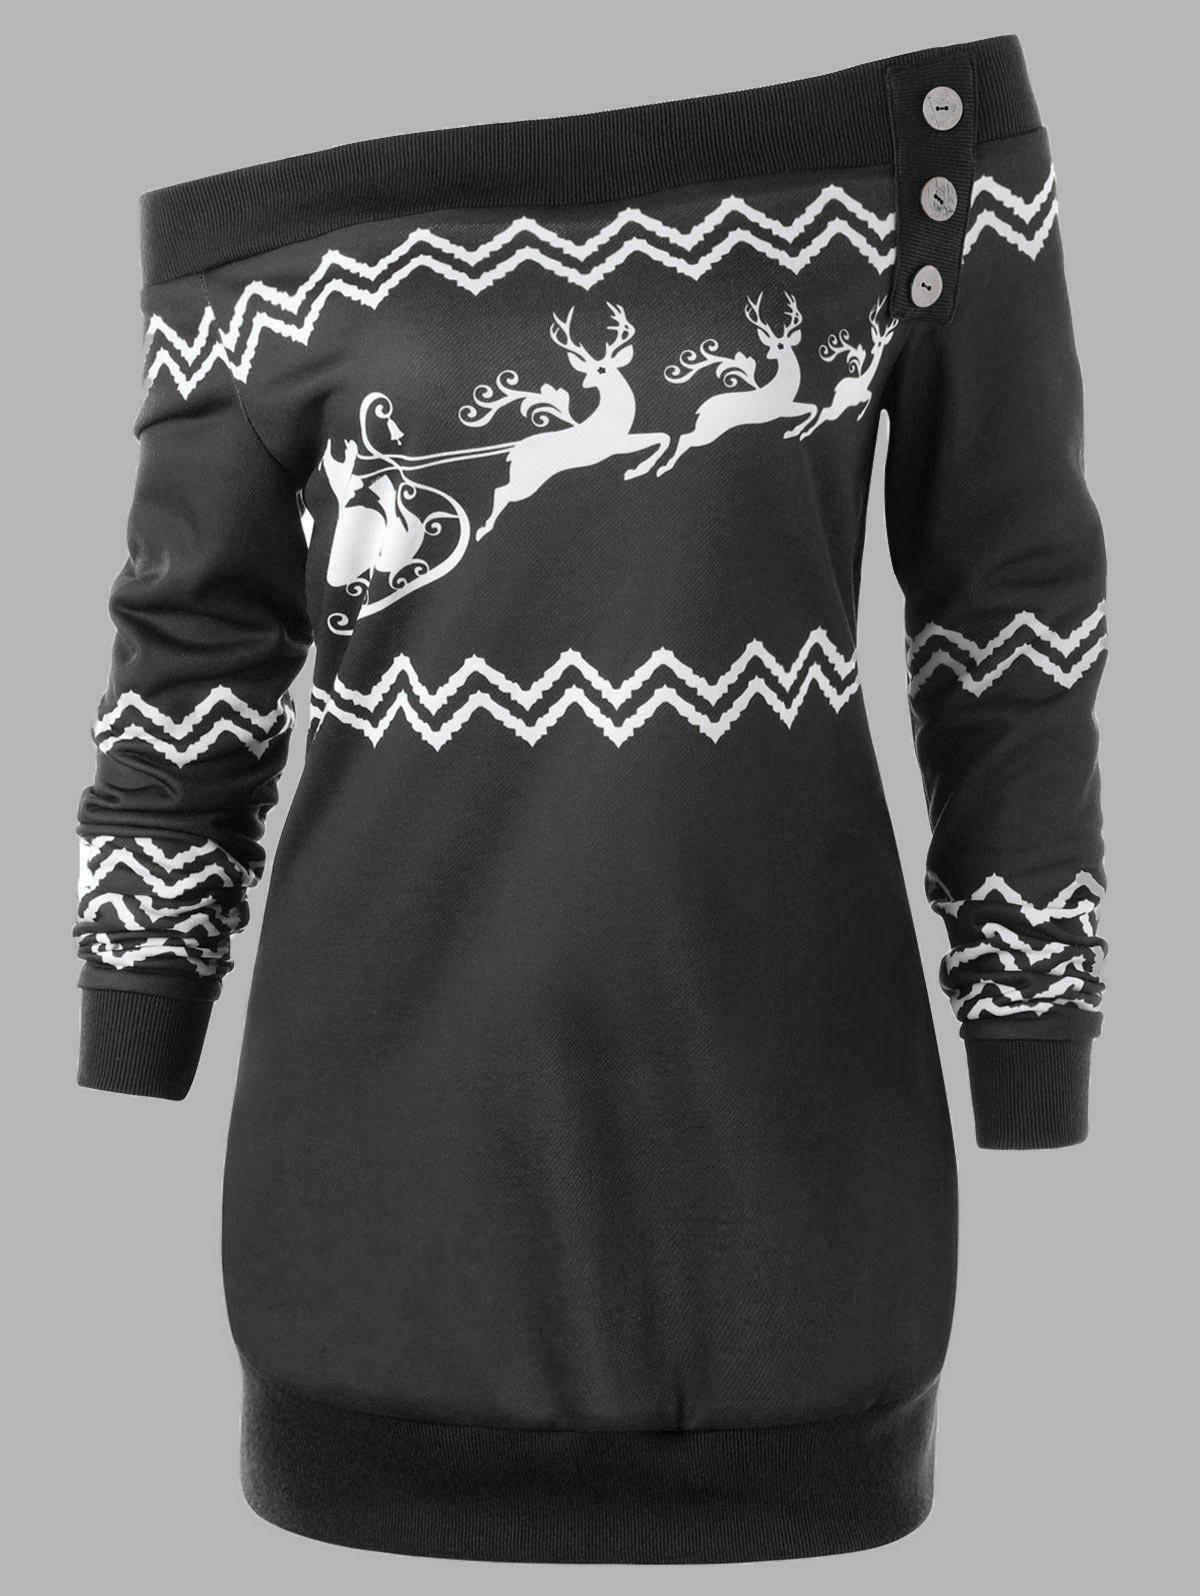 Plus Size Pullover Christmas Zigzag Deer Skew Neck SweatshirtWOMEN<br><br>Size: 4XL; Color: BLACK; Material: Polyester,Spandex; Shirt Length: Long; Sleeve Length: Full; Style: Casual; Pattern Style: Character,Zig Zag(Chevron); Embellishment: Button; Season: Fall,Spring,Winter; Weight: 0.3500kg; Package Contents: 1 x Sweatshirt;